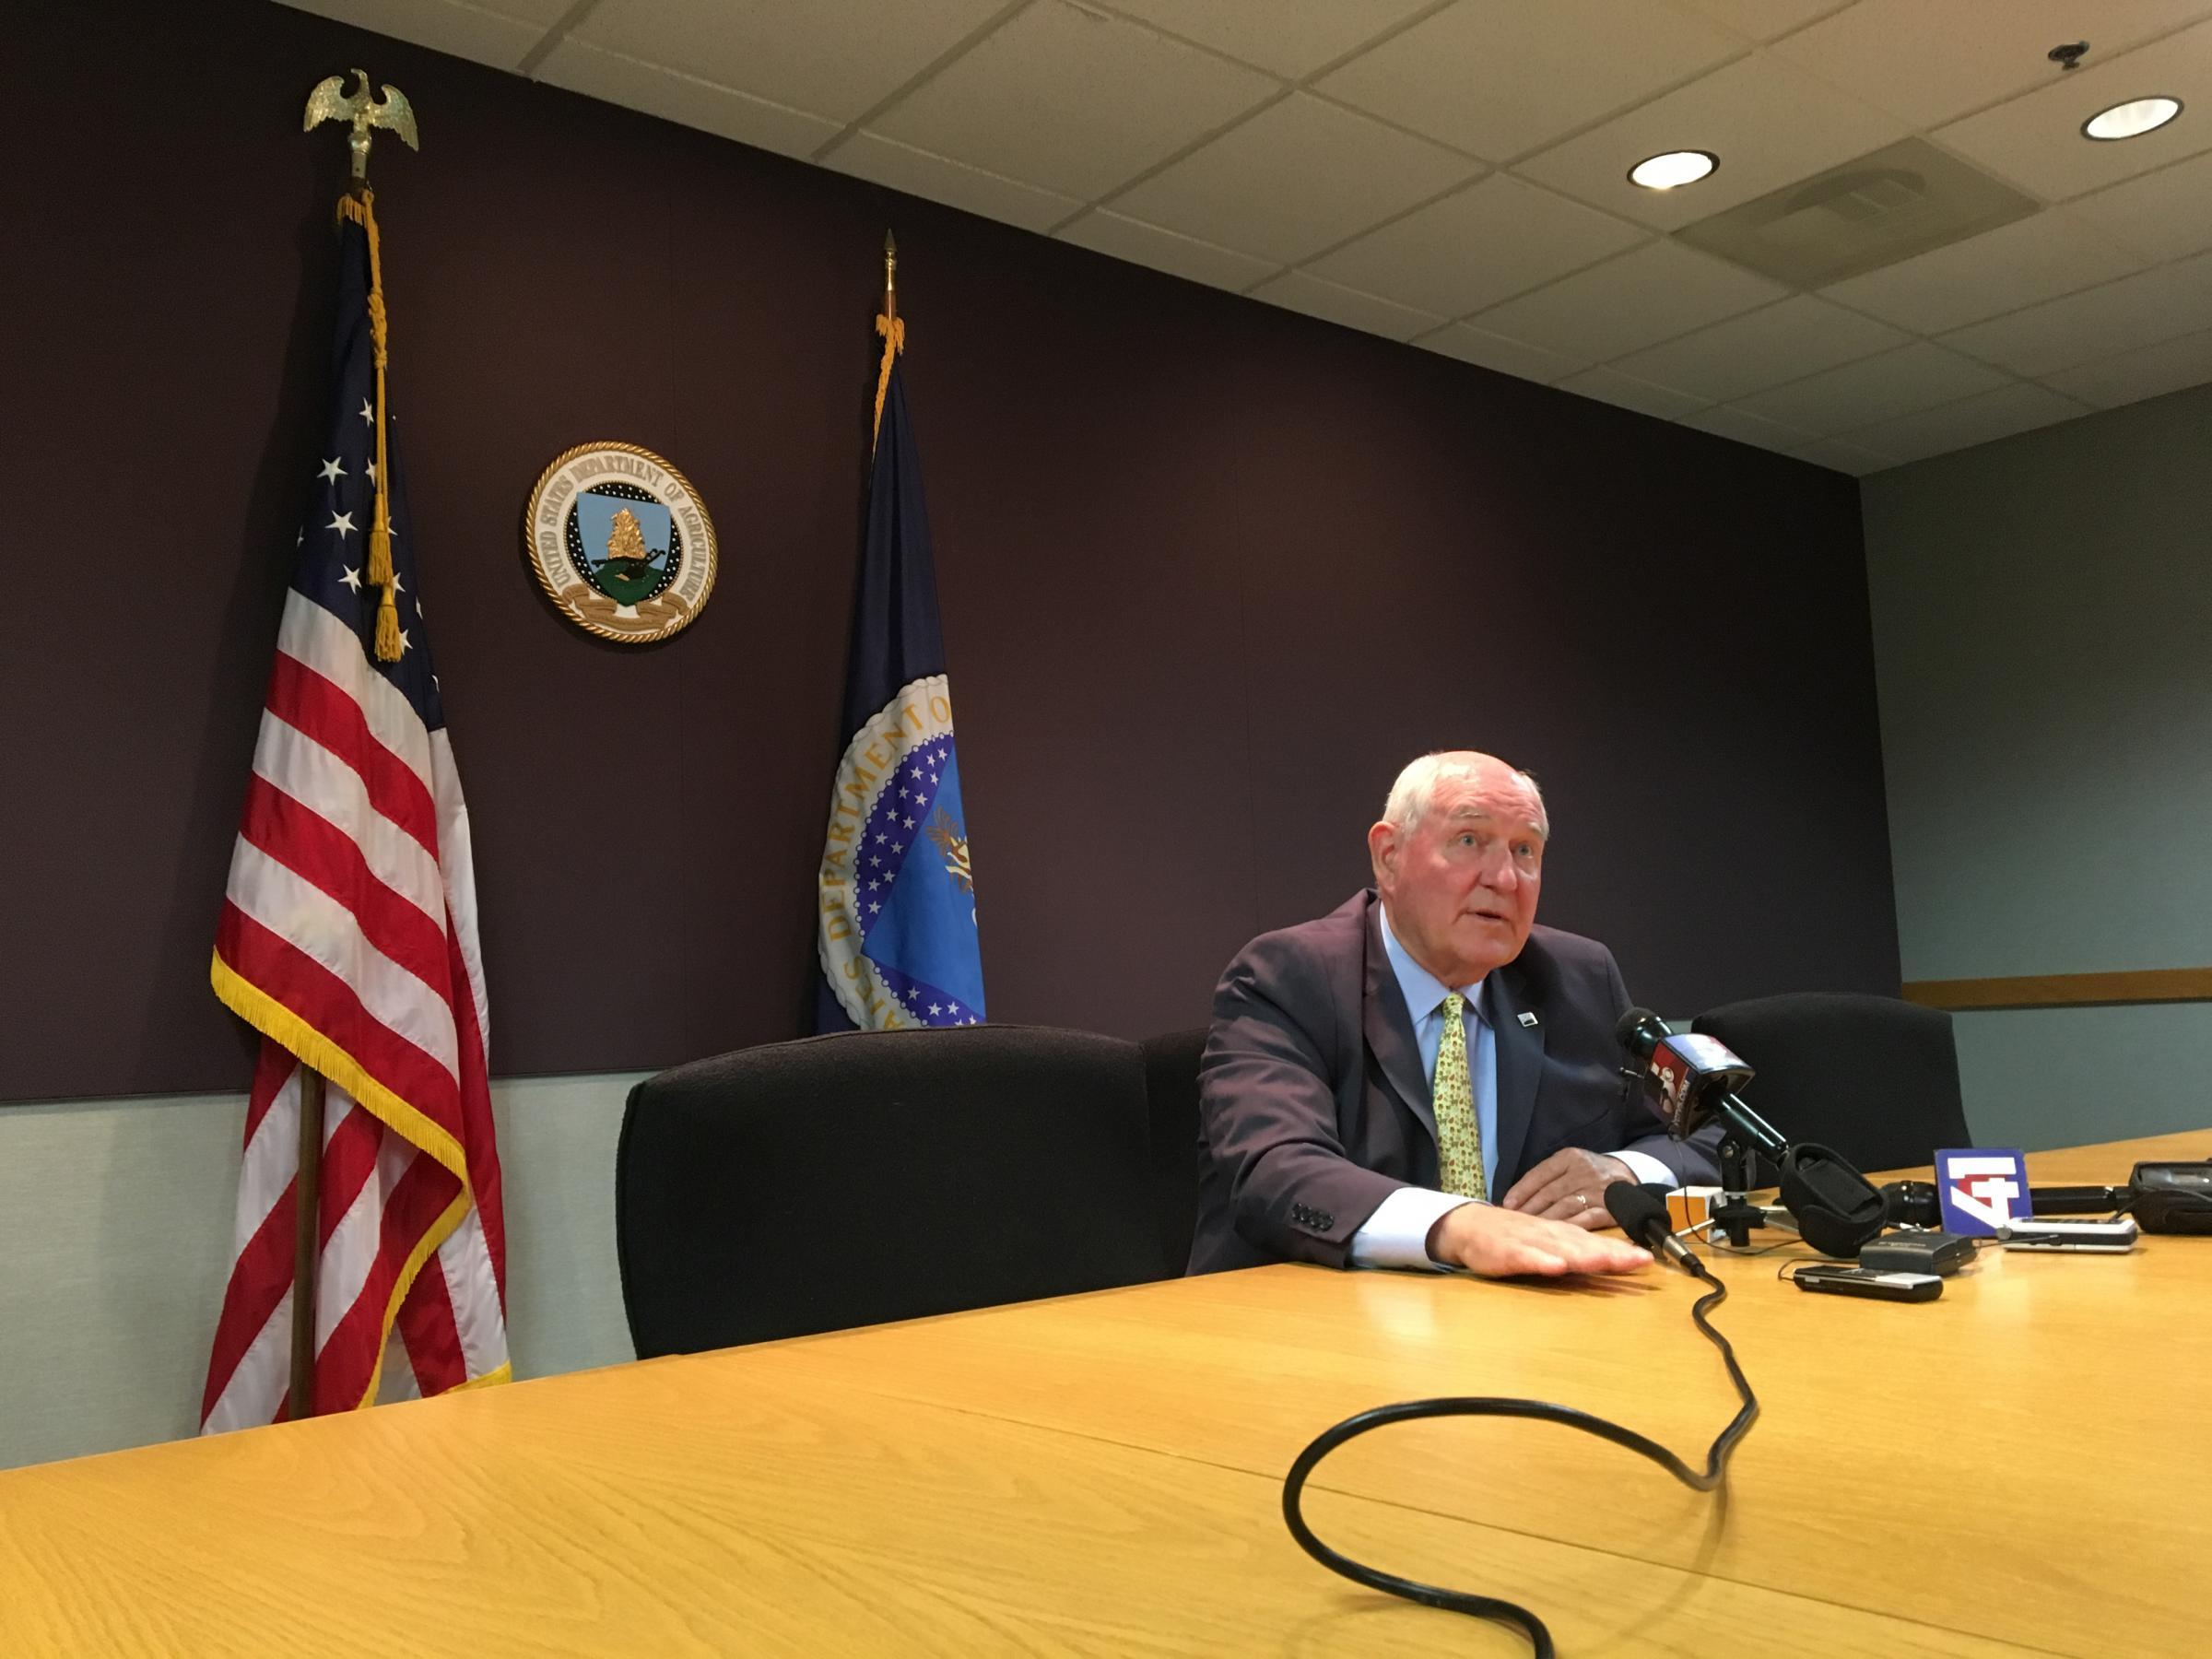 New U.S. Agriculture Secretary Sonny Perdue meets the media at a USDA office in Kansas City on Thursday his third day on the job